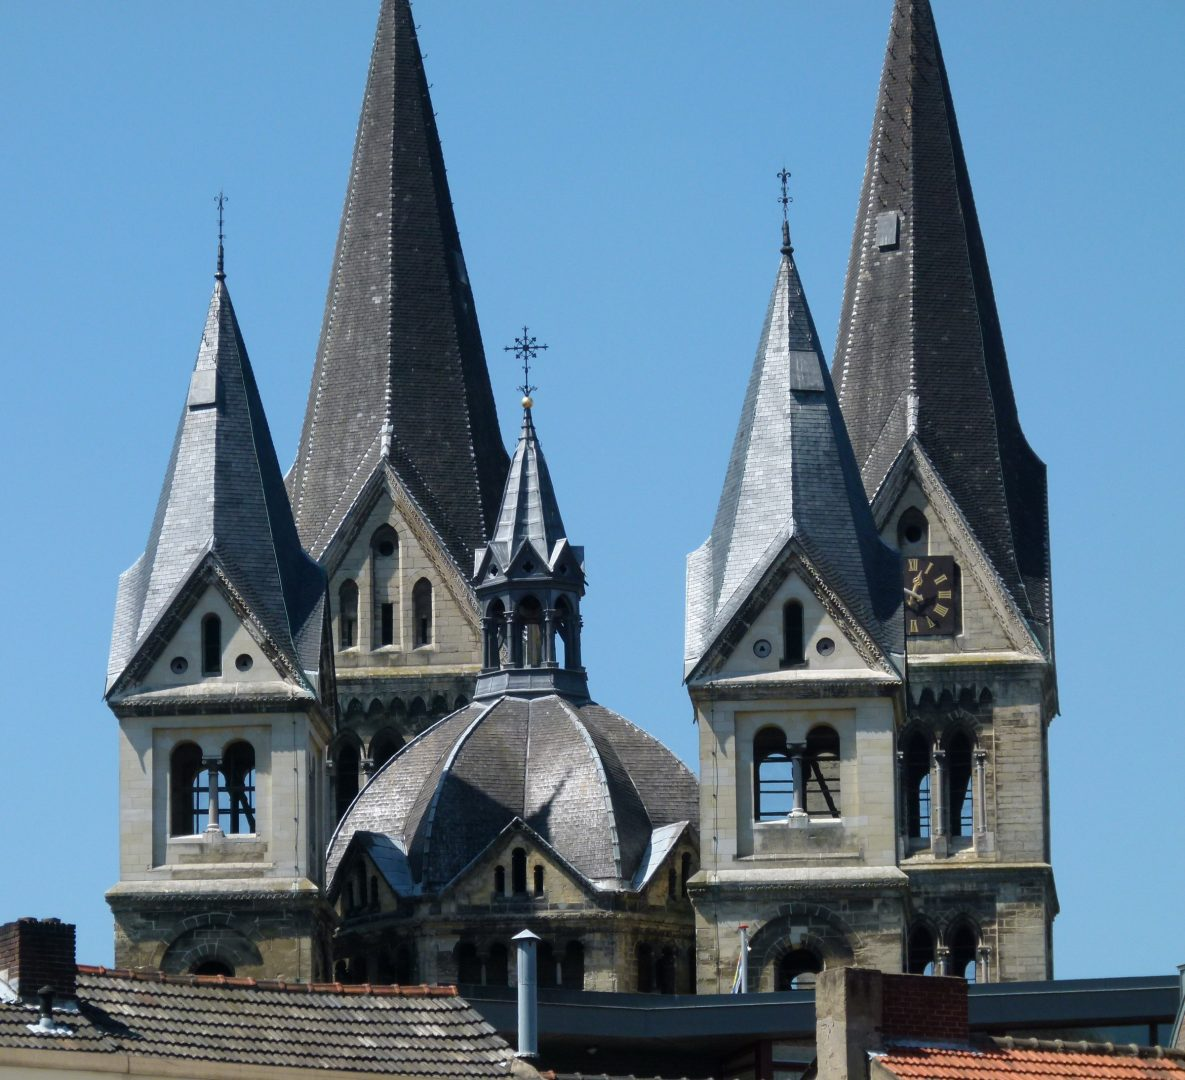 Munsterkerk, Netherlands